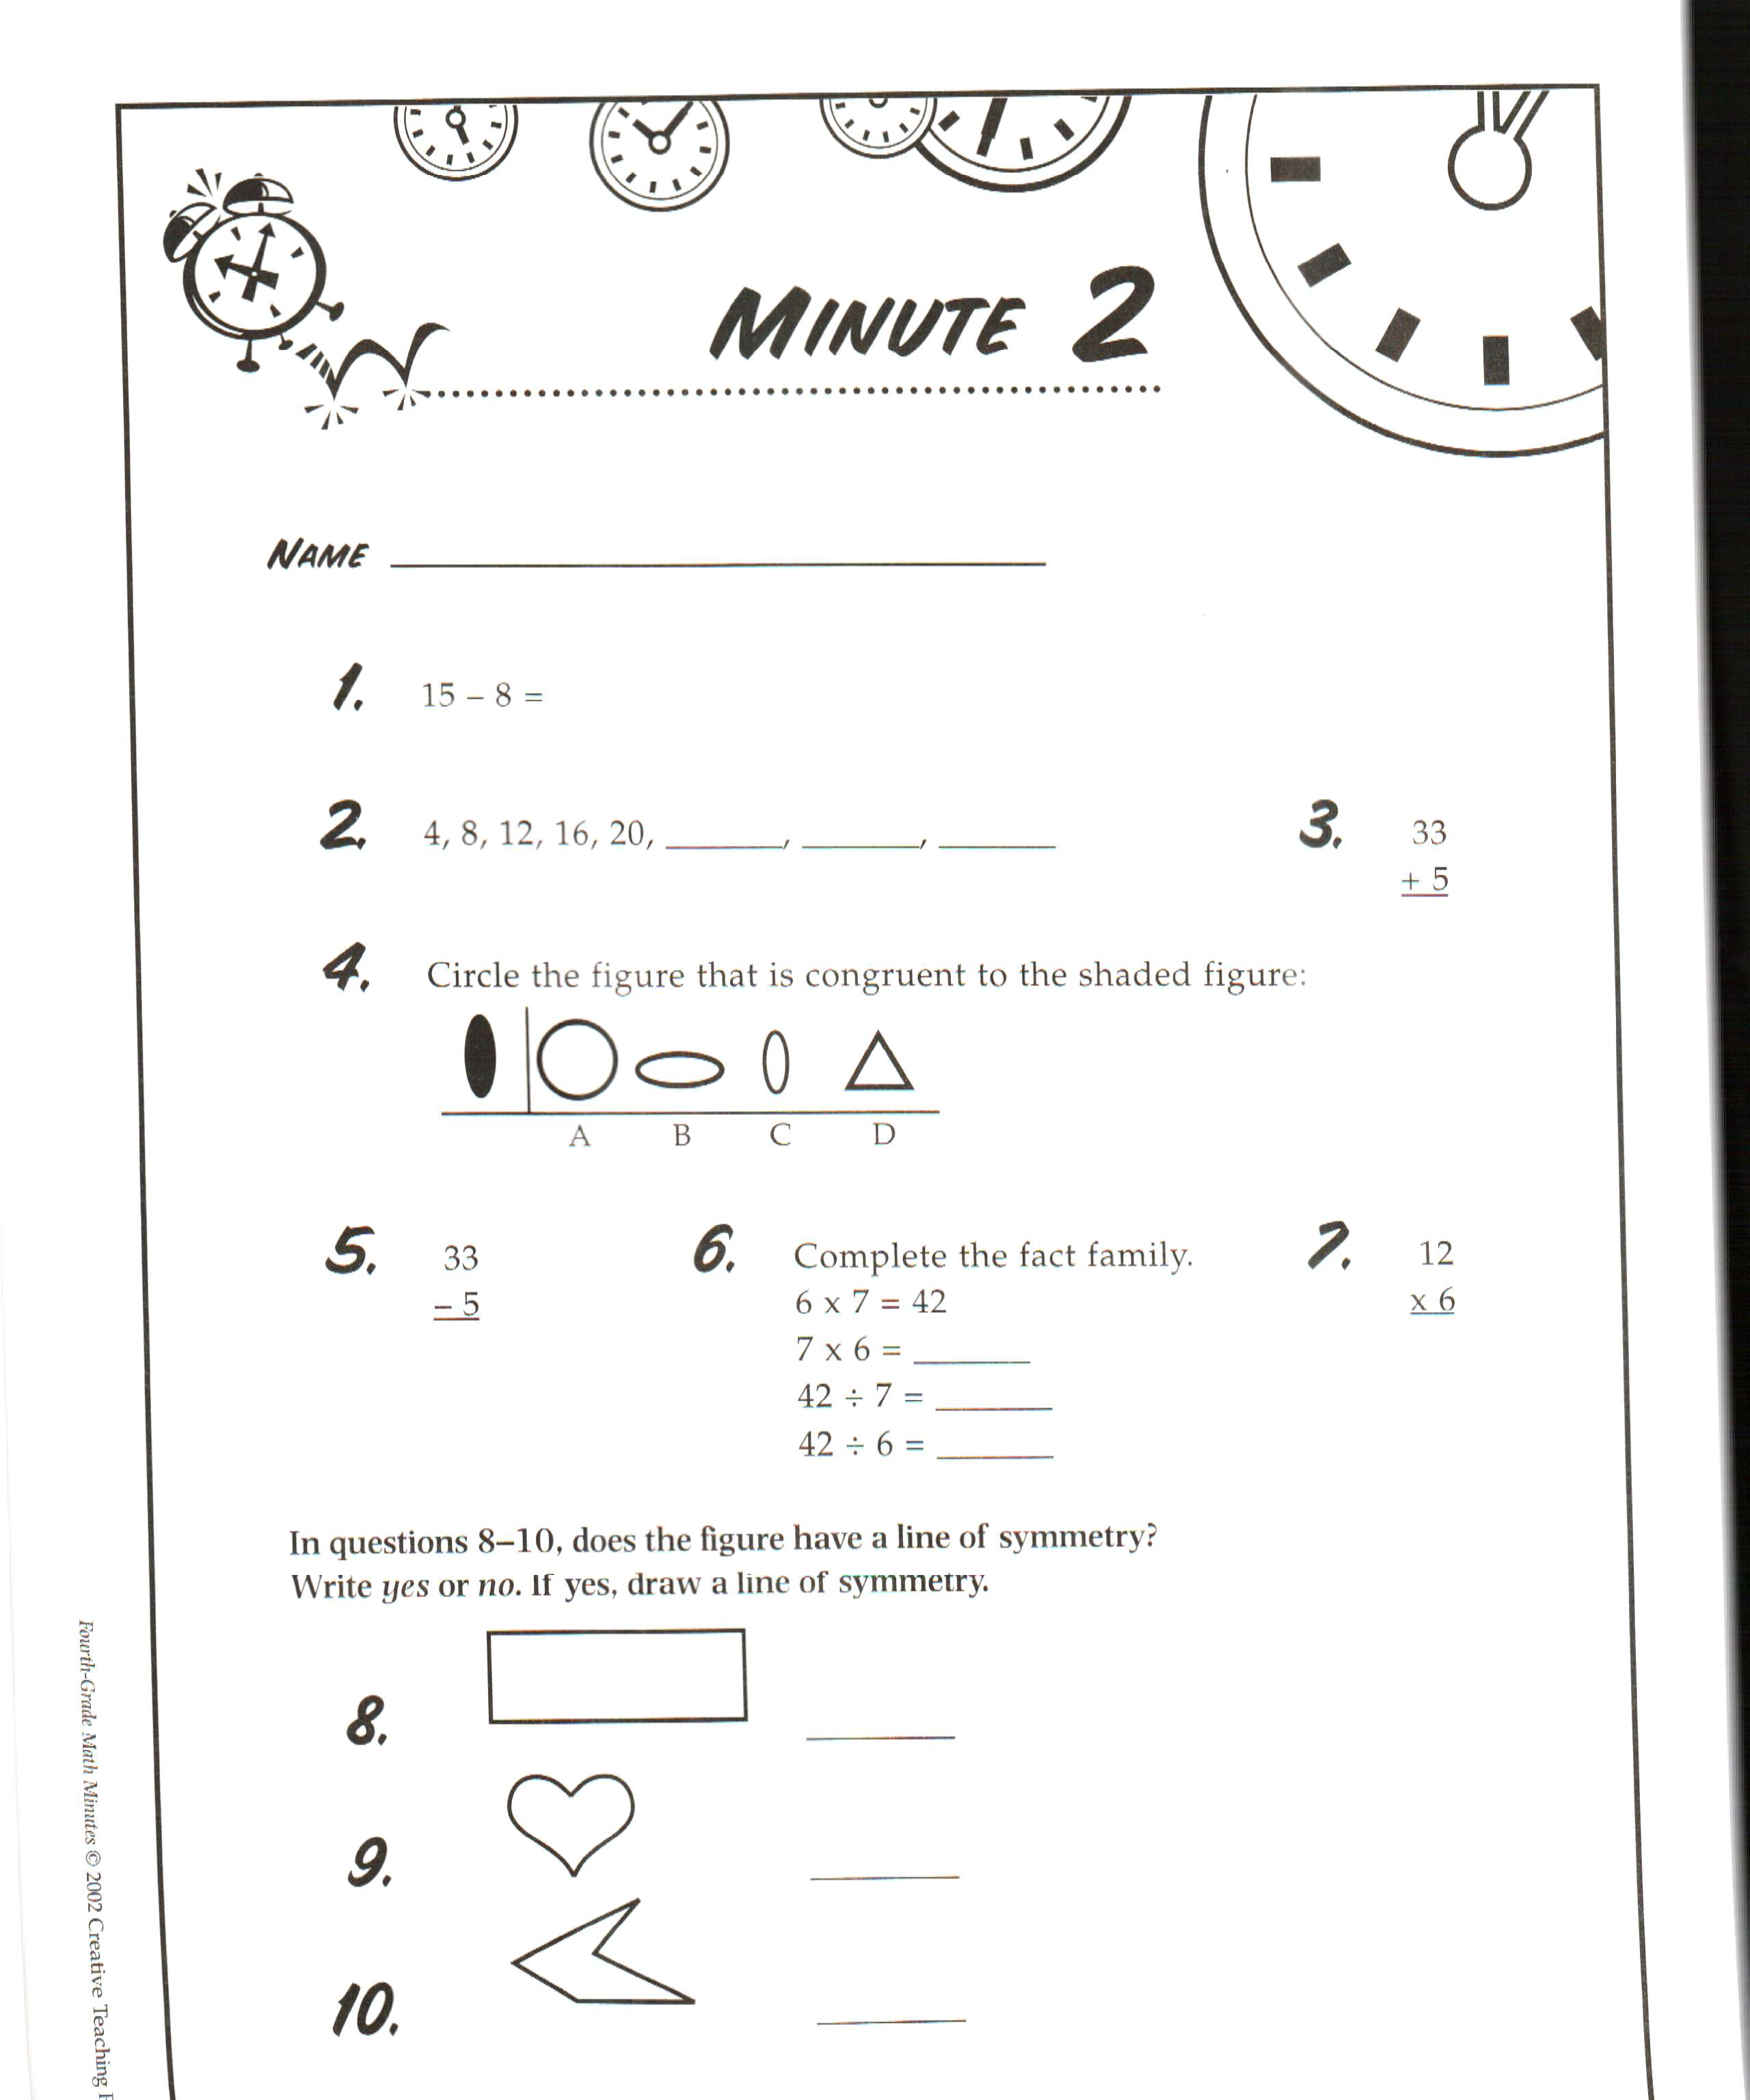 Worksheet Math Minute Worksheet Fun Worksheet Study Site